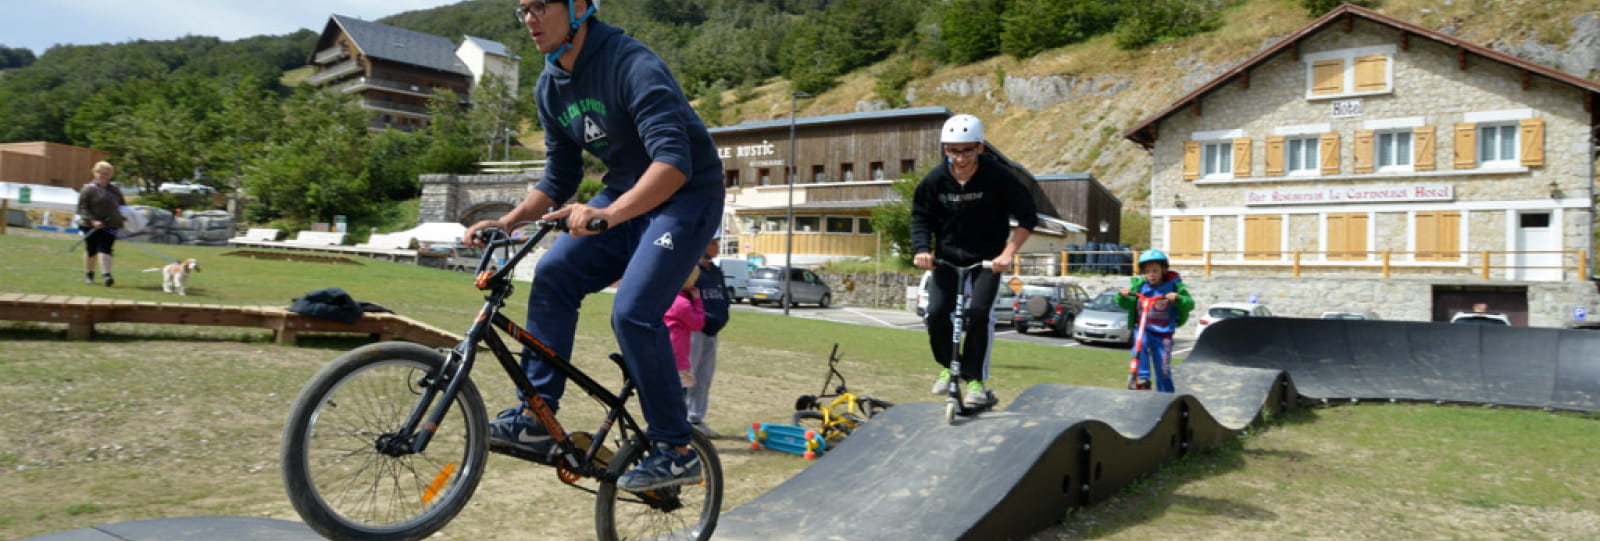 Piste de Pumptrack